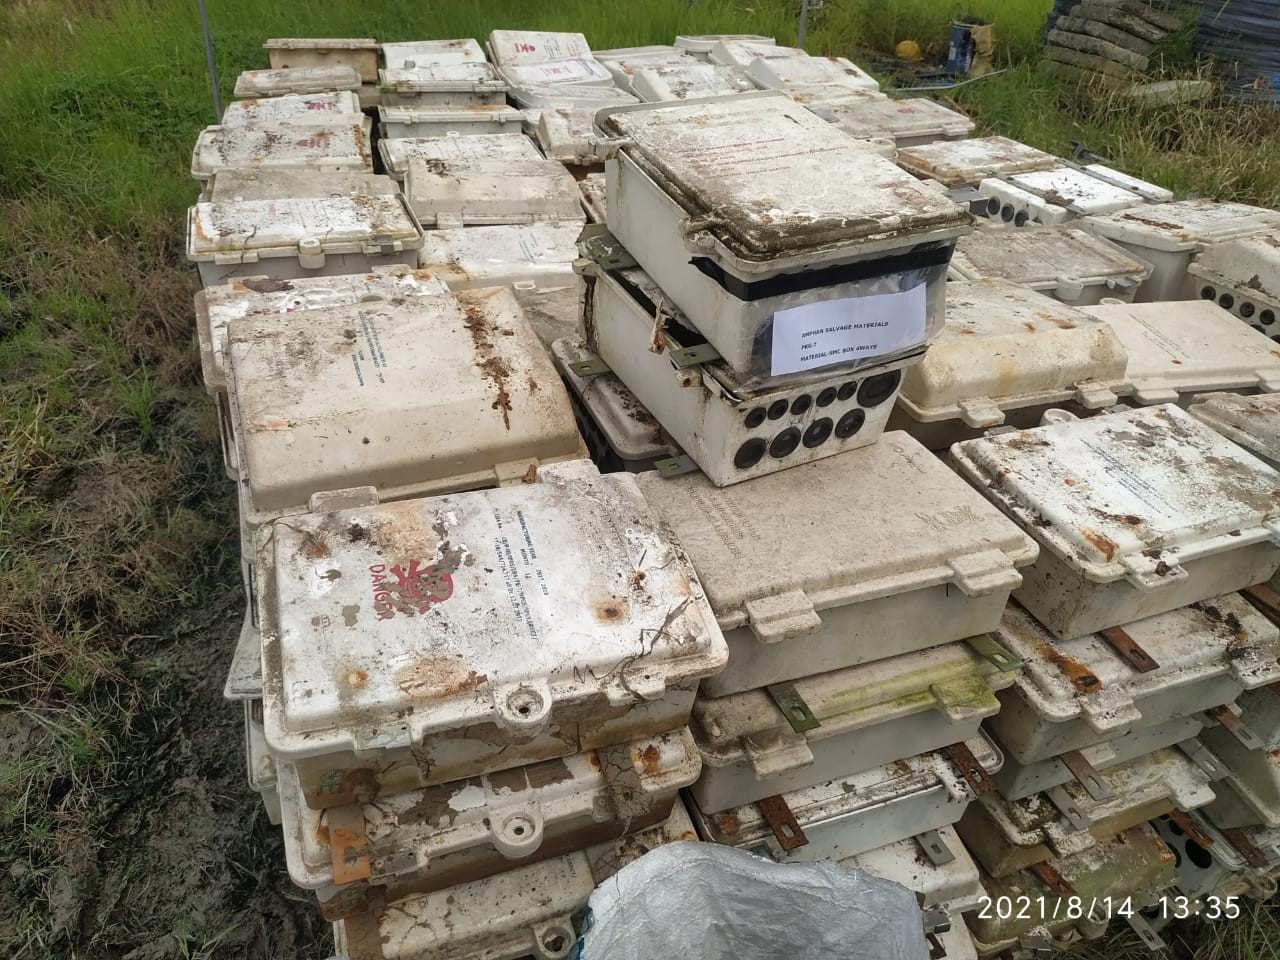 Voltas Scrap (Lot - 3) -(Cables, Conductors, Structural items and other accessories)